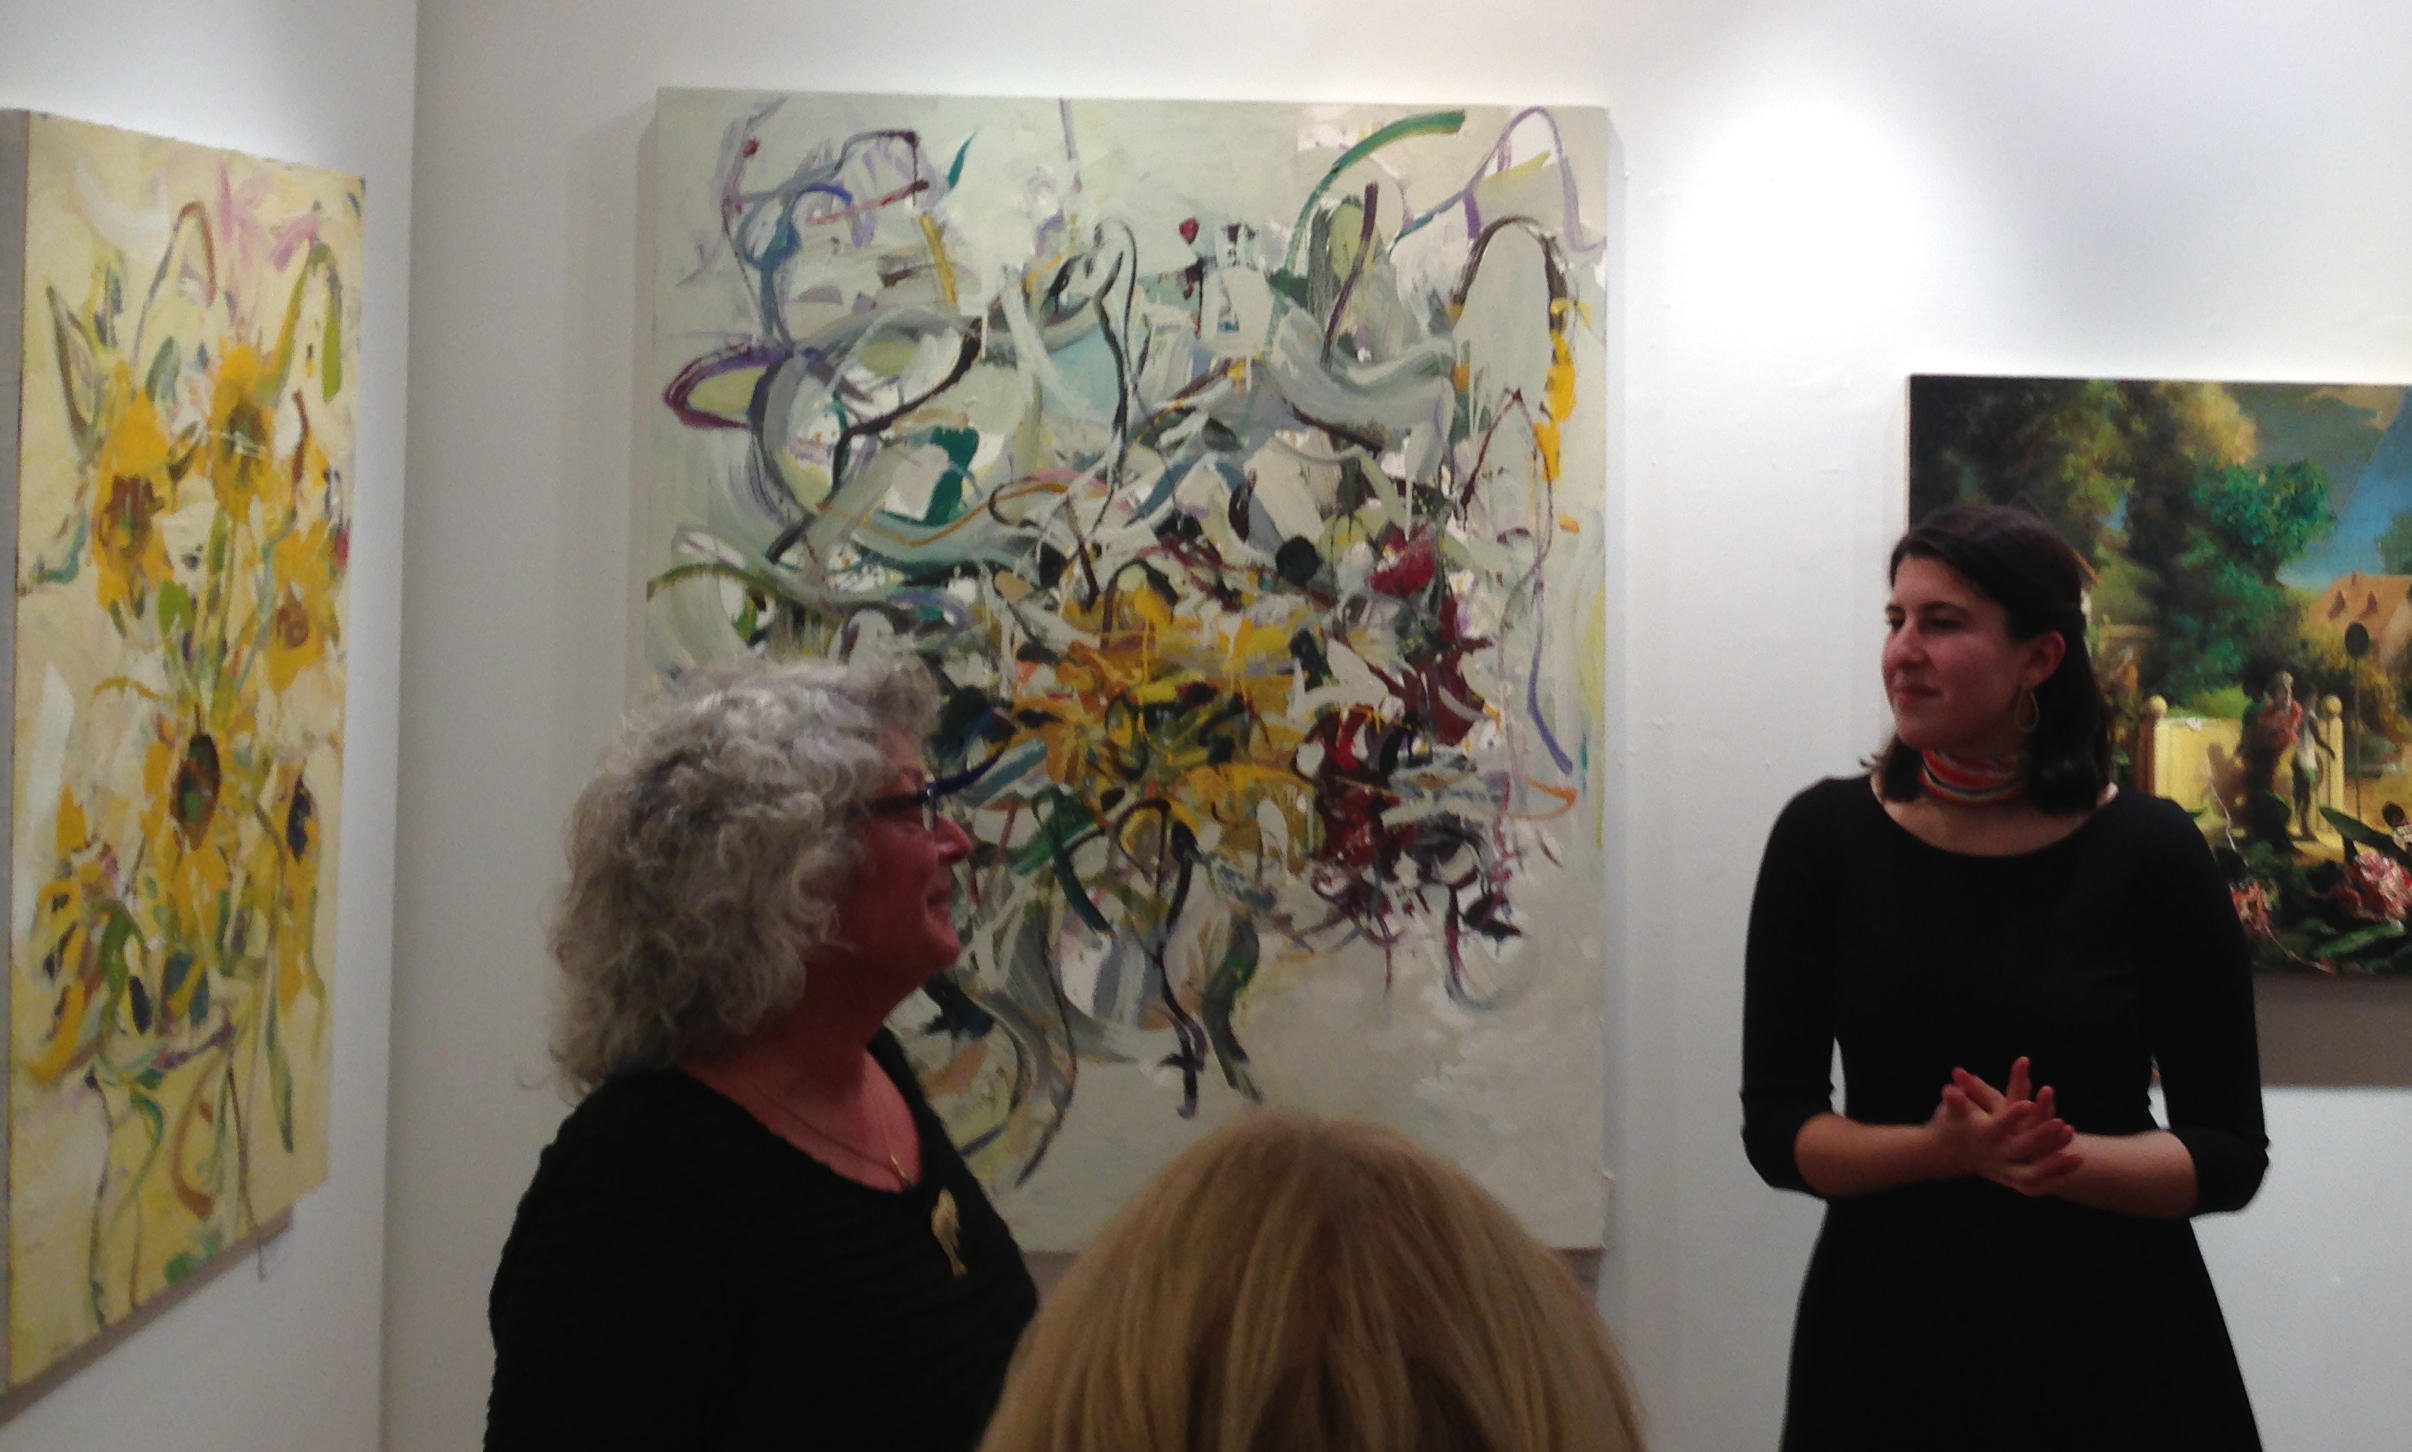 Art critic  Rebecca Nemser  (left) and gallery director Jillian Wertheim (right) discuss Jon Imber's life and work at 13FOREST Gallery's  post-screening reception of  Imber's Left Hand  .